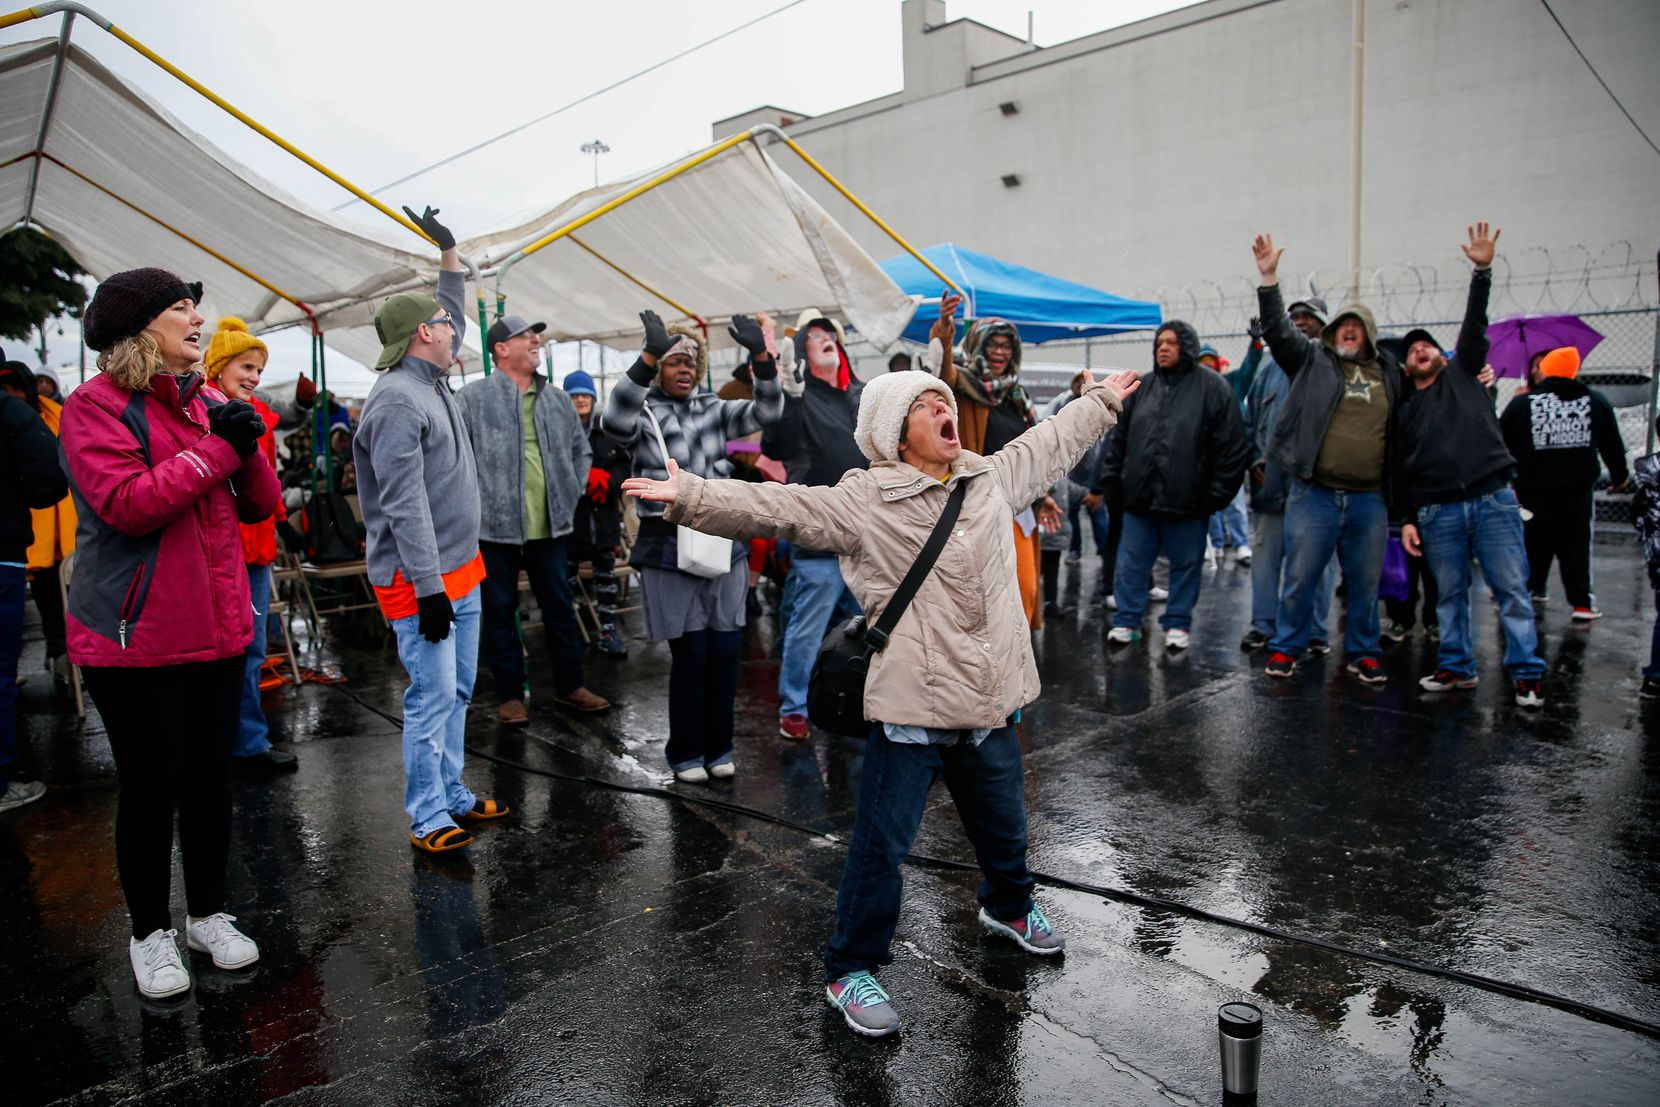 Worshippers sang during S.O.U.L. Church's last service on the downtown Dallas lot on Dec. 29, 2019.